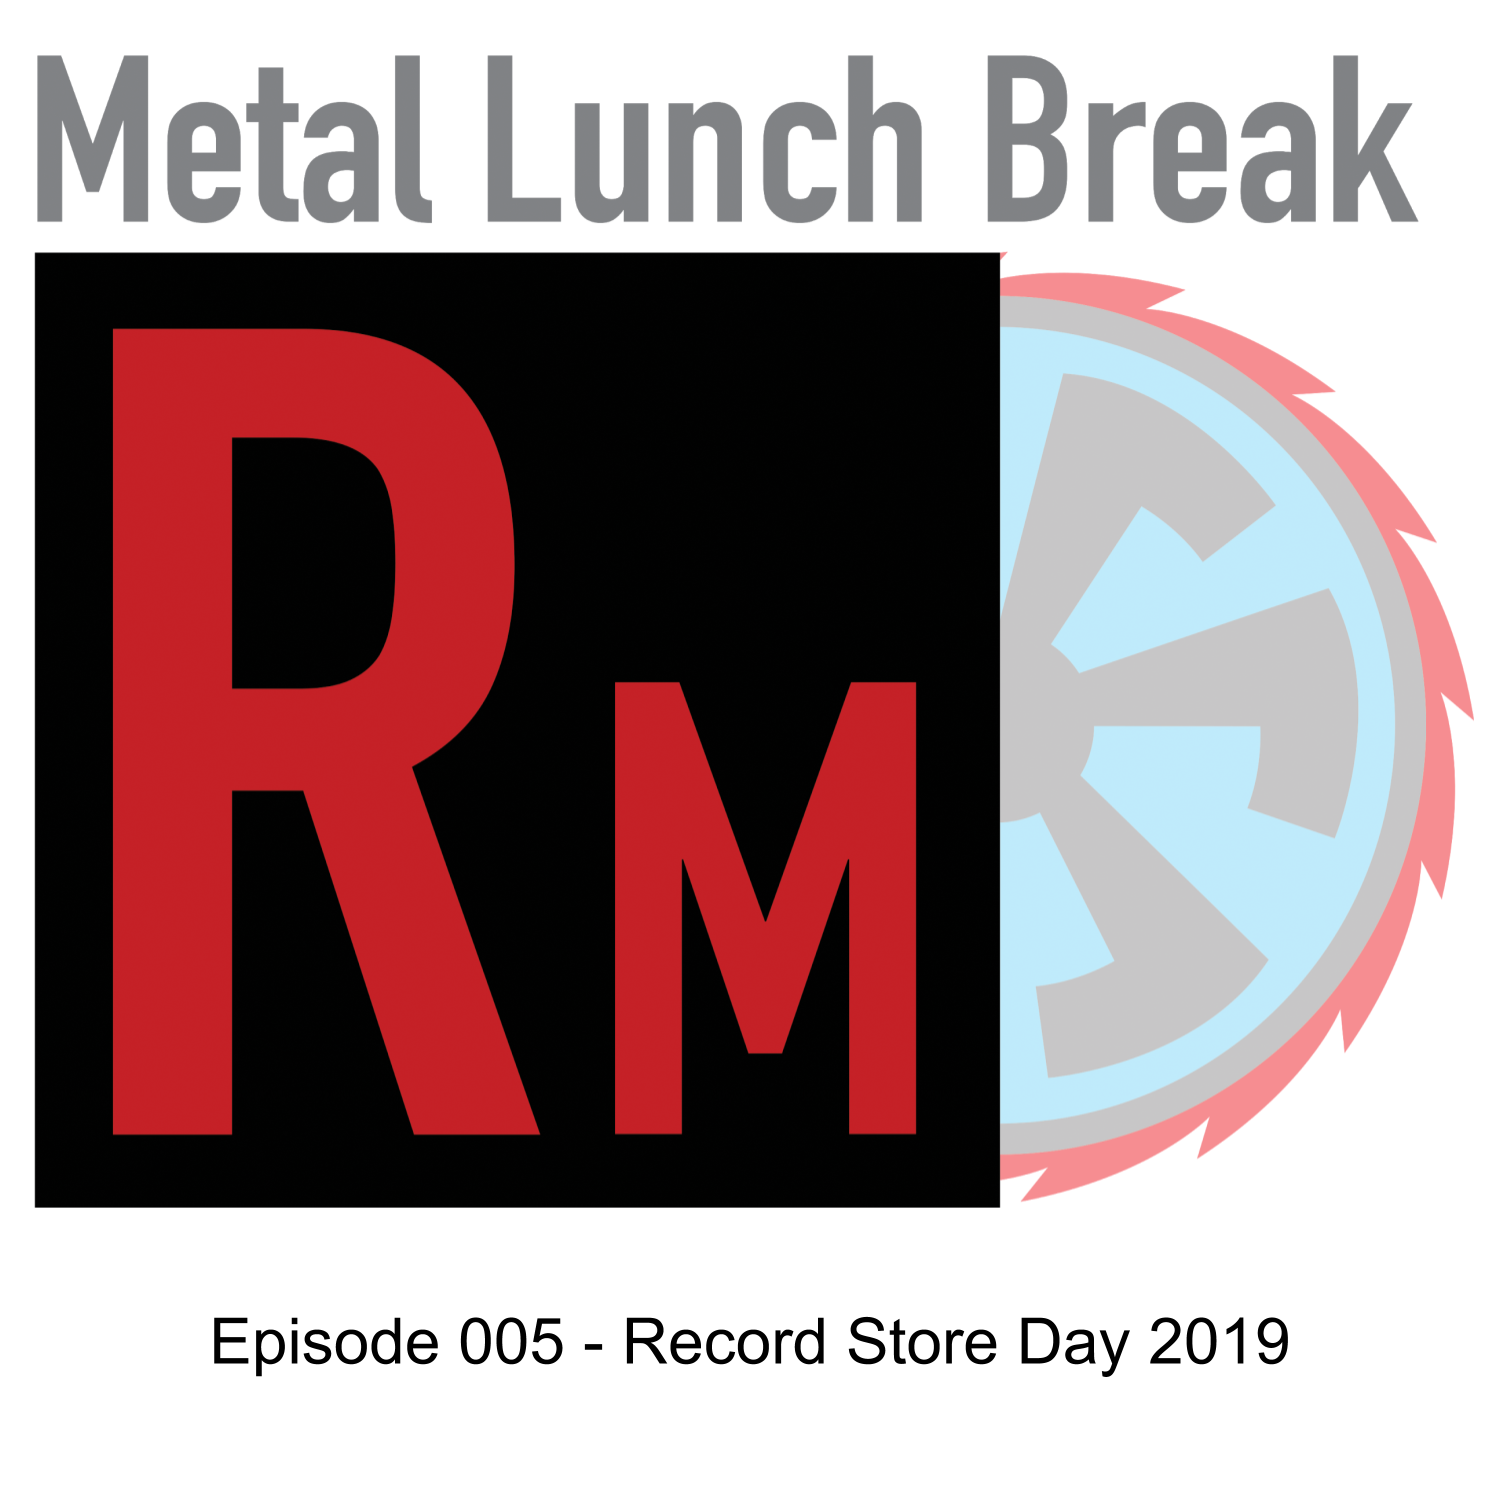 Metal Lunch Break Episode 0005: Record Store Day 2019